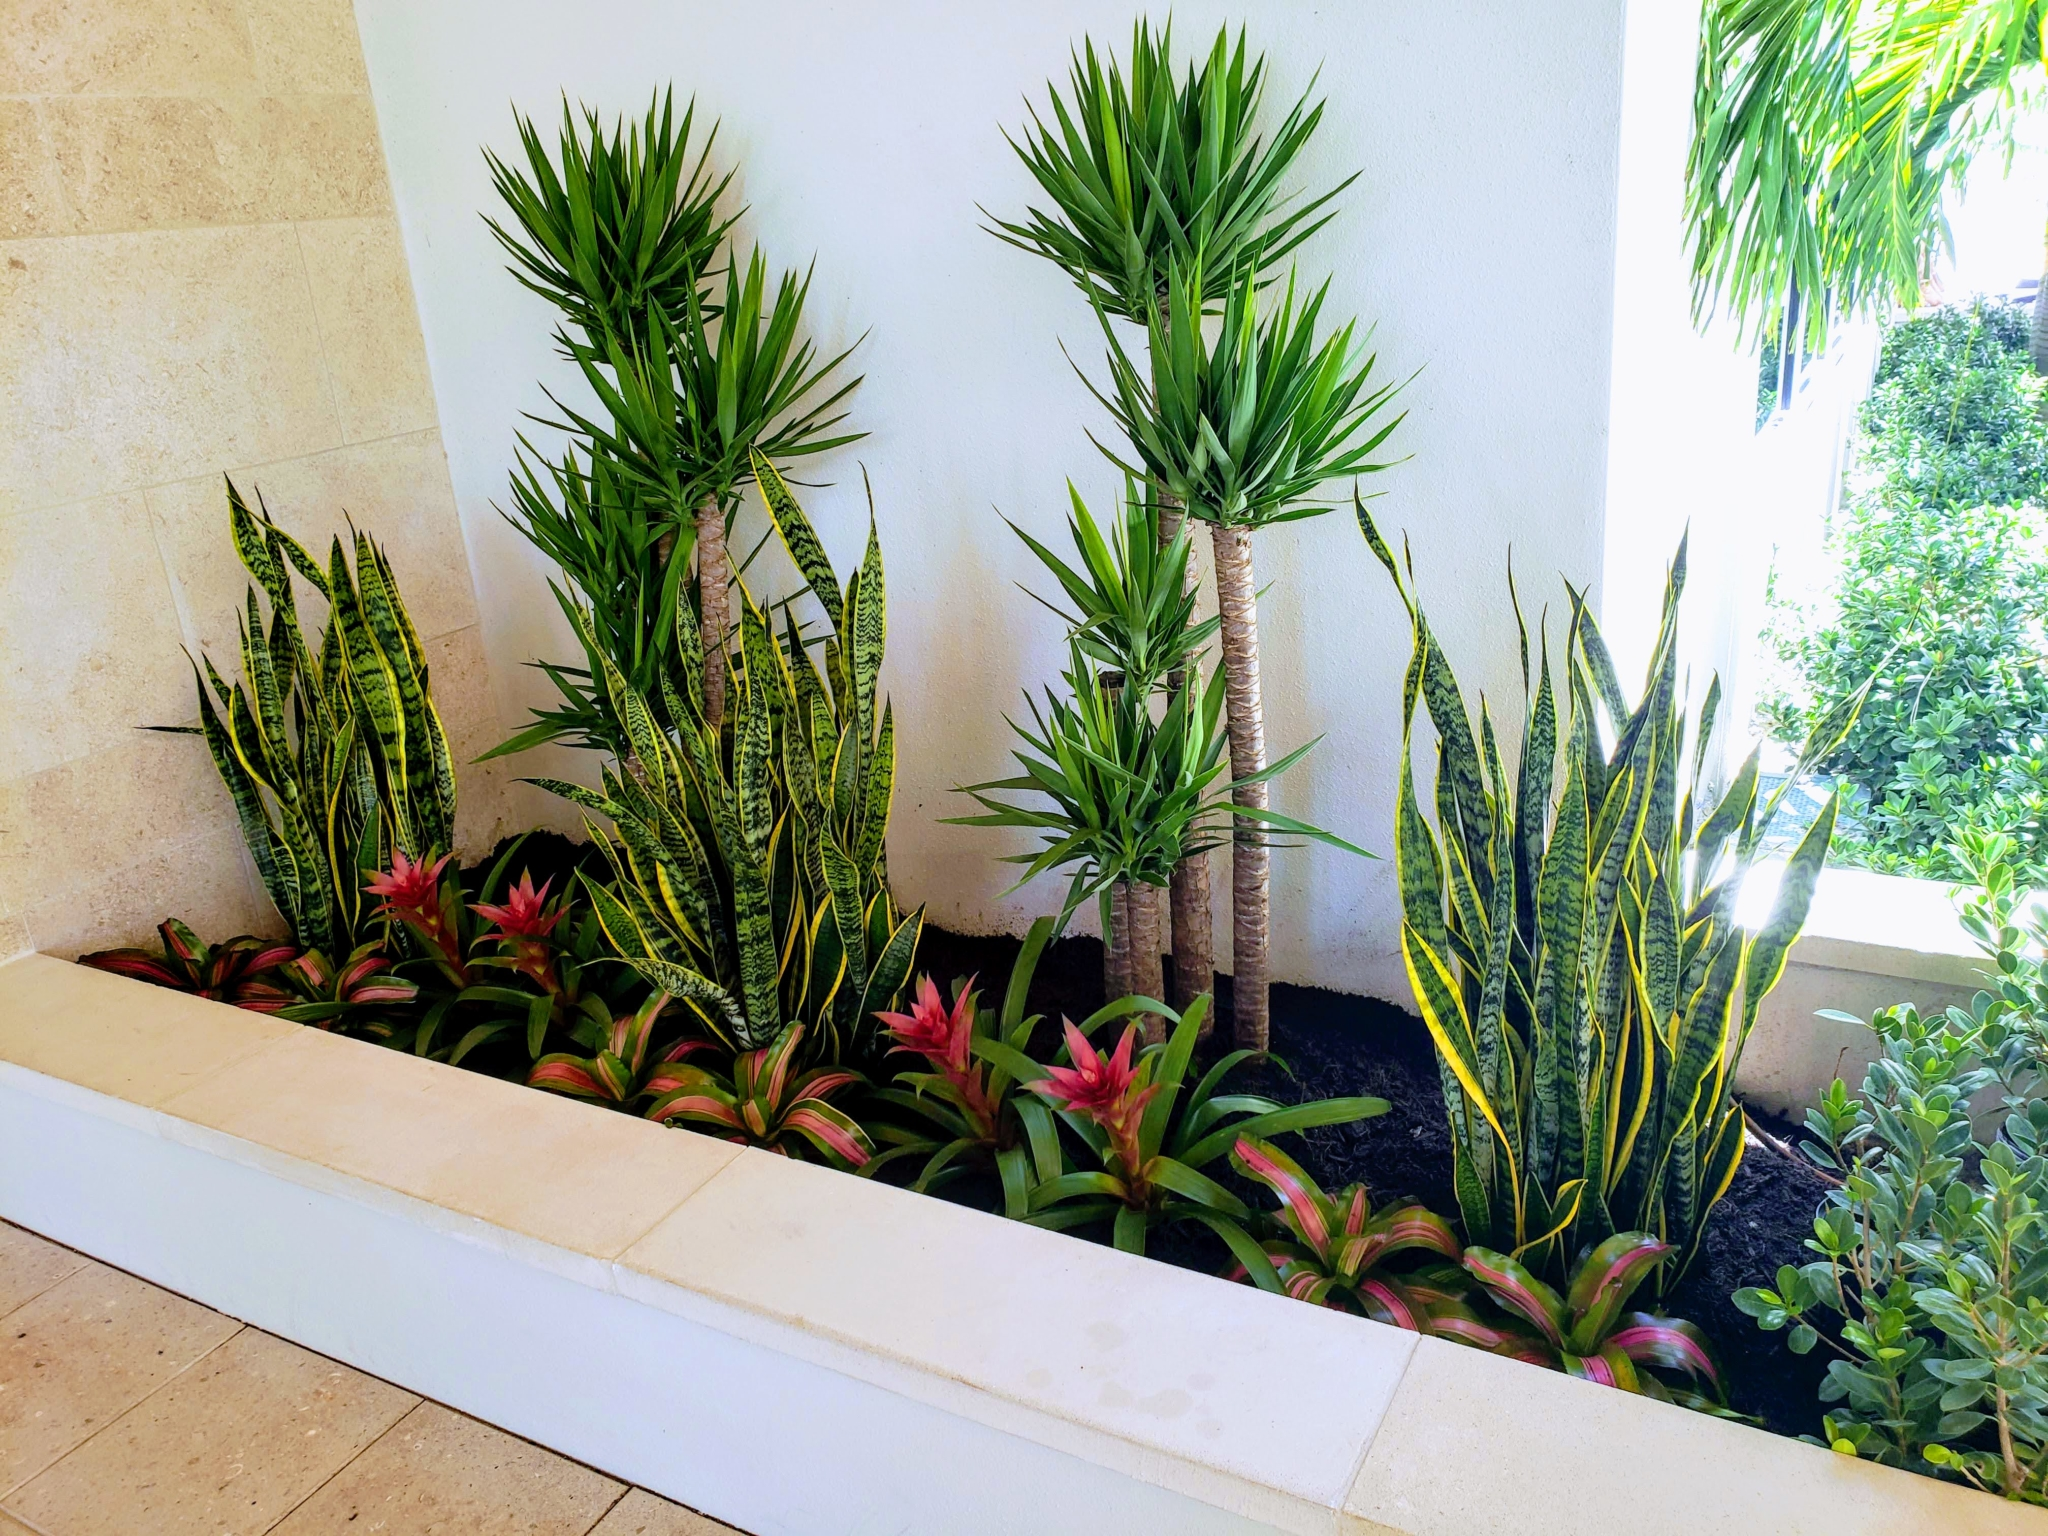 Entryway plantings at Florida country club zeroscape-style plants with bromeliads snake plants and yucca